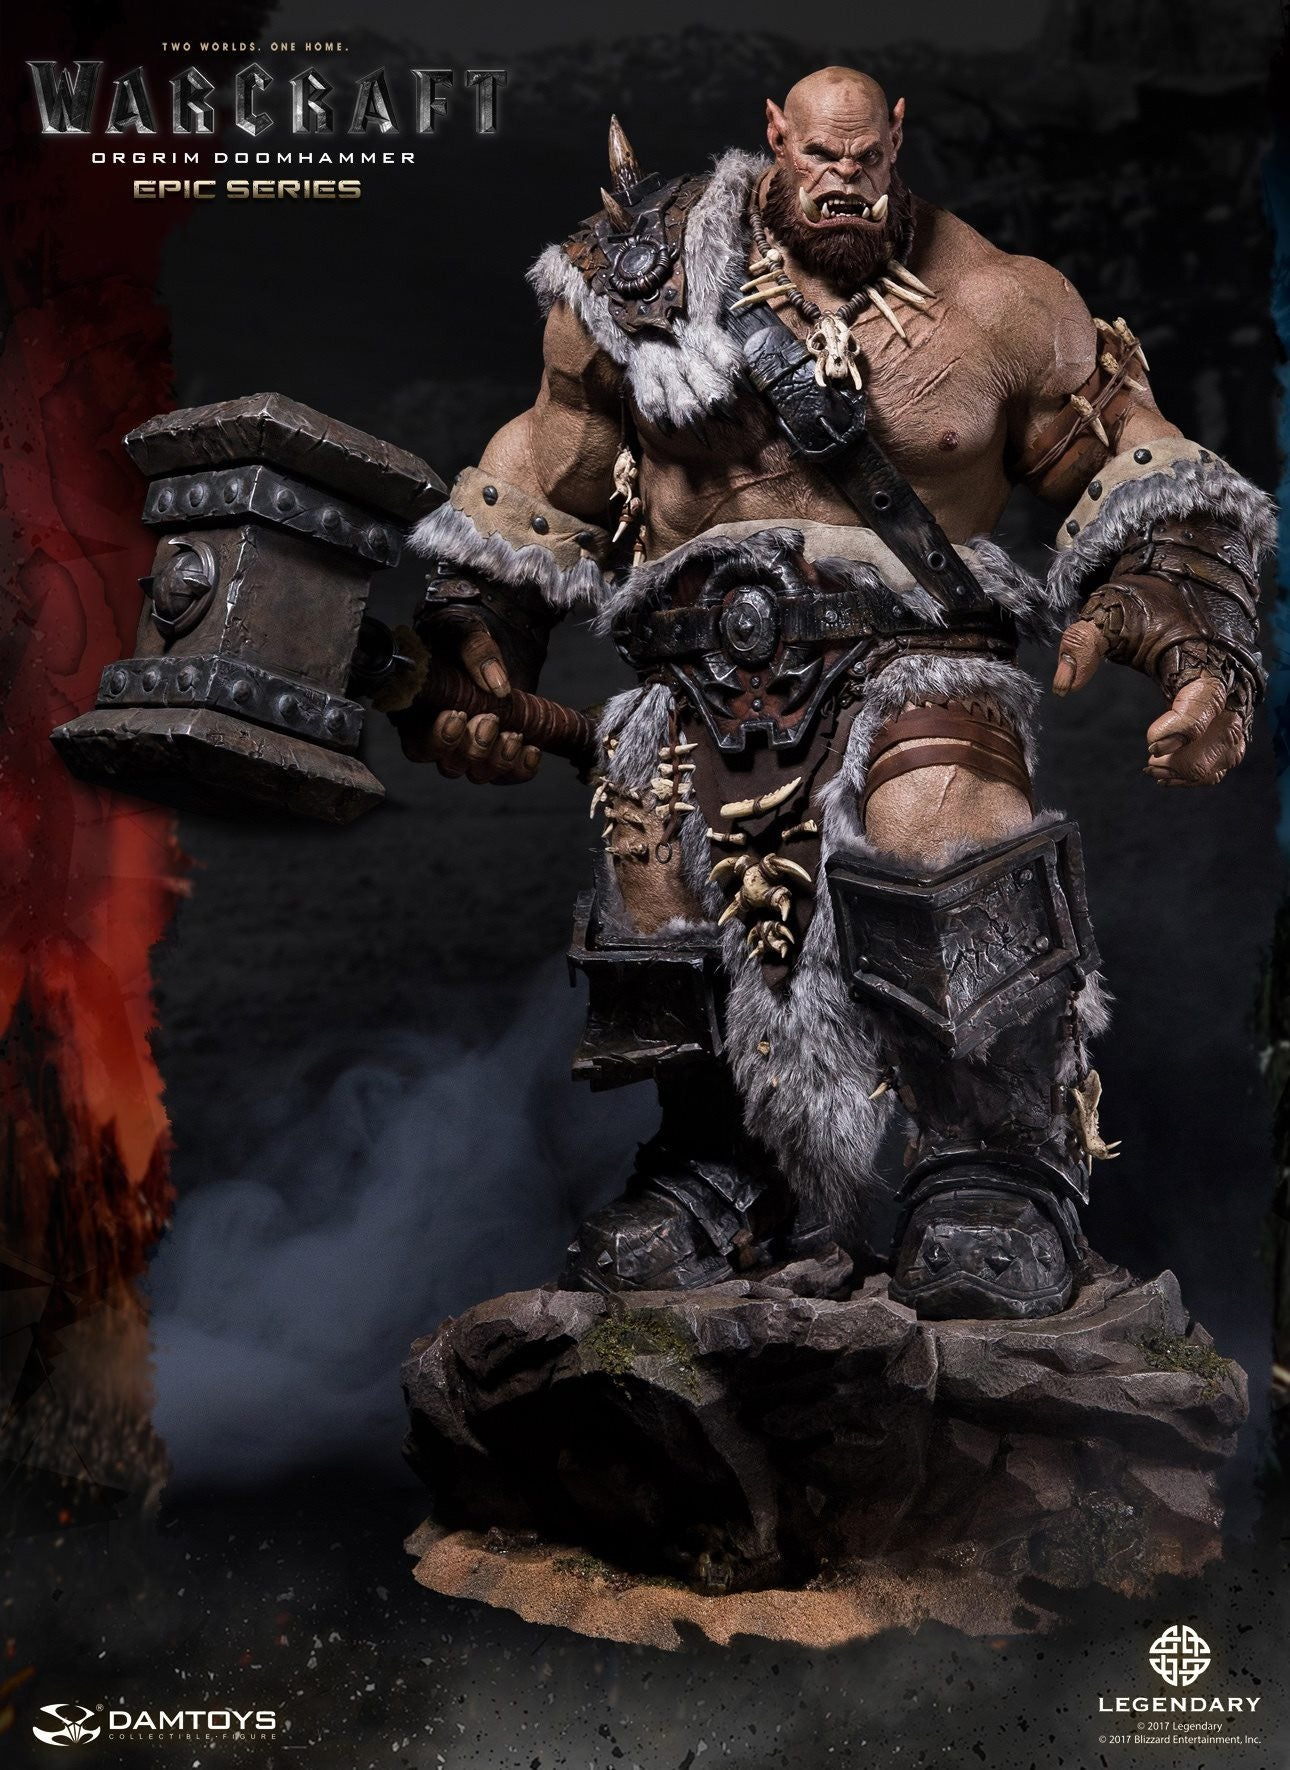 Dam Toys - DMLW02 - Epic Series - Warcraft - Orgrim Doomhammer Premium Statue - Marvelous Toys - 1